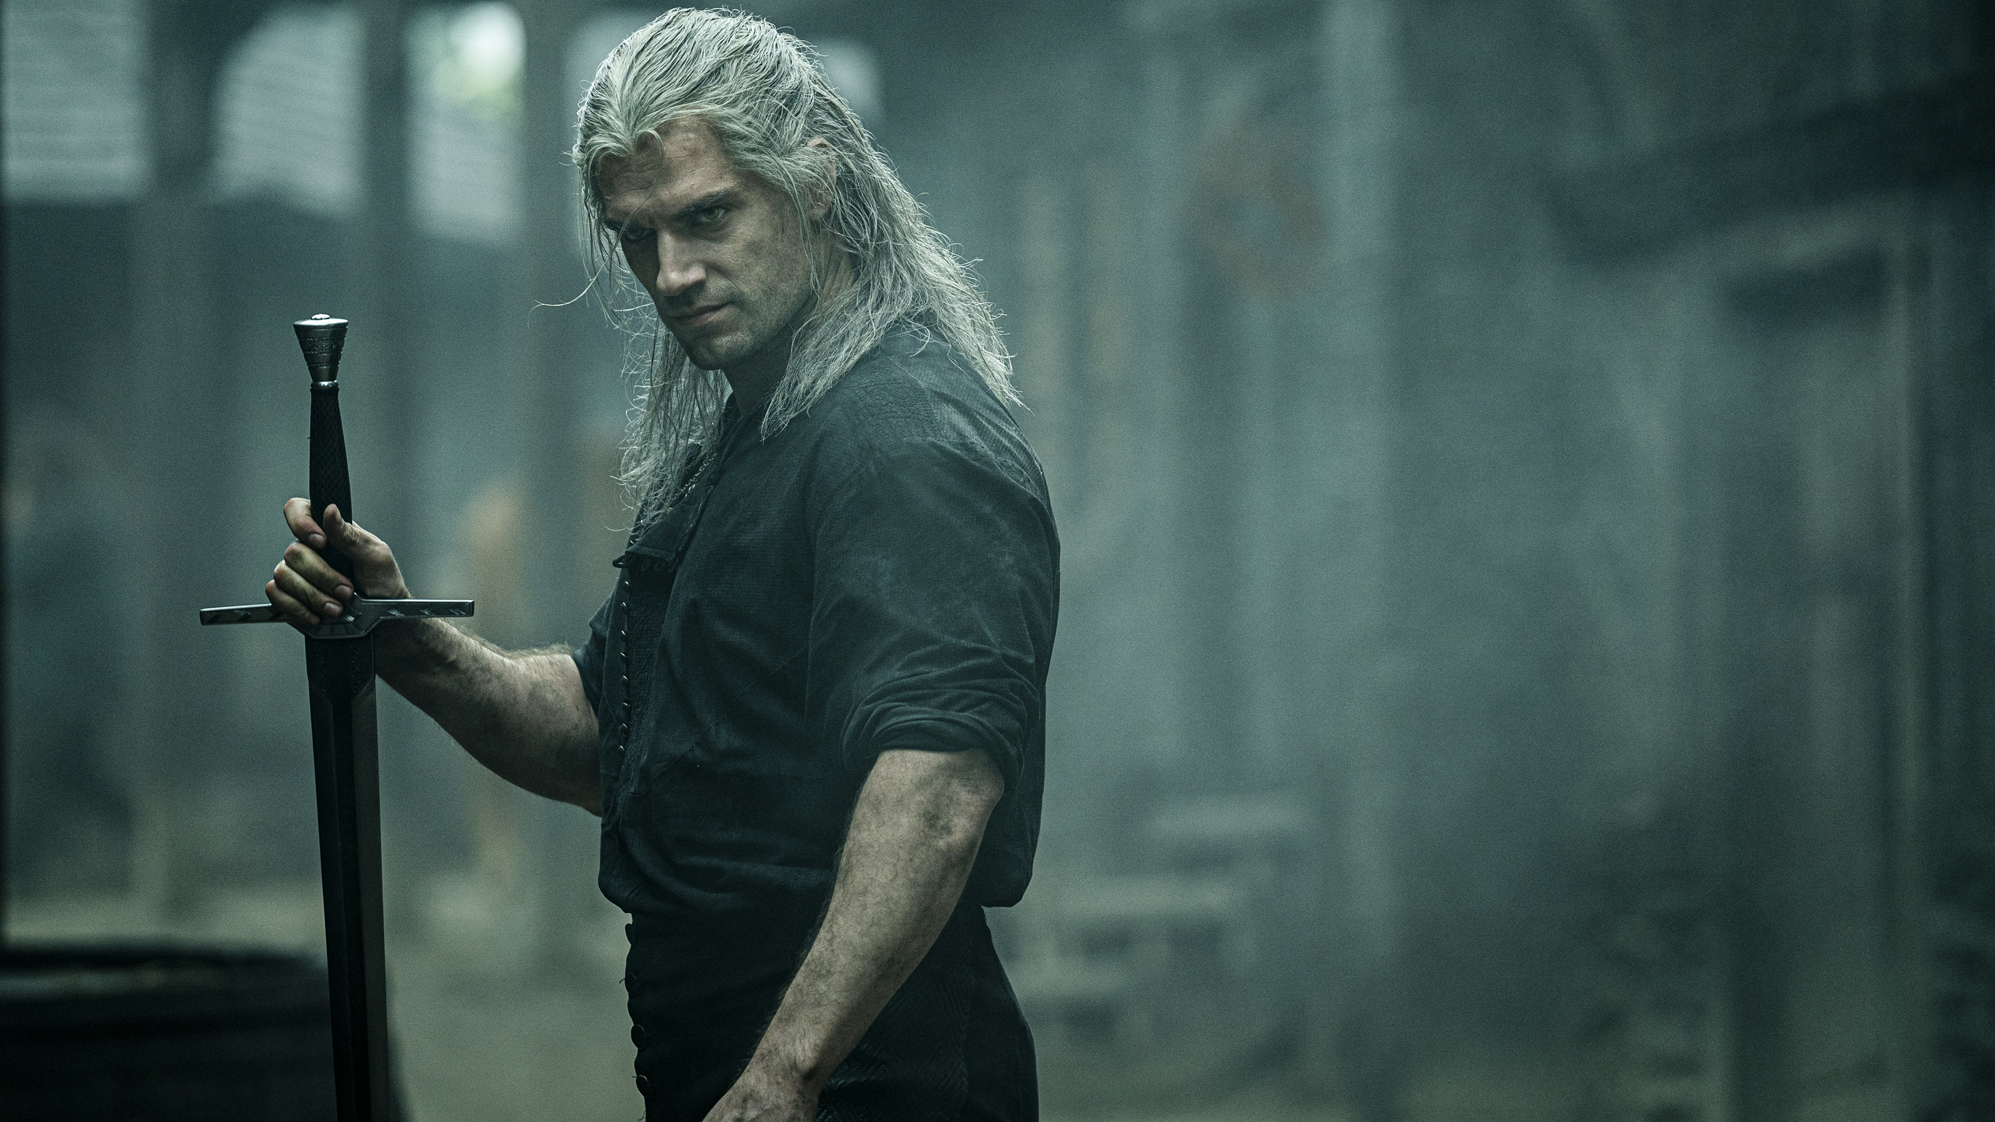 The Witcher season 2 release date story new cast members and what we know